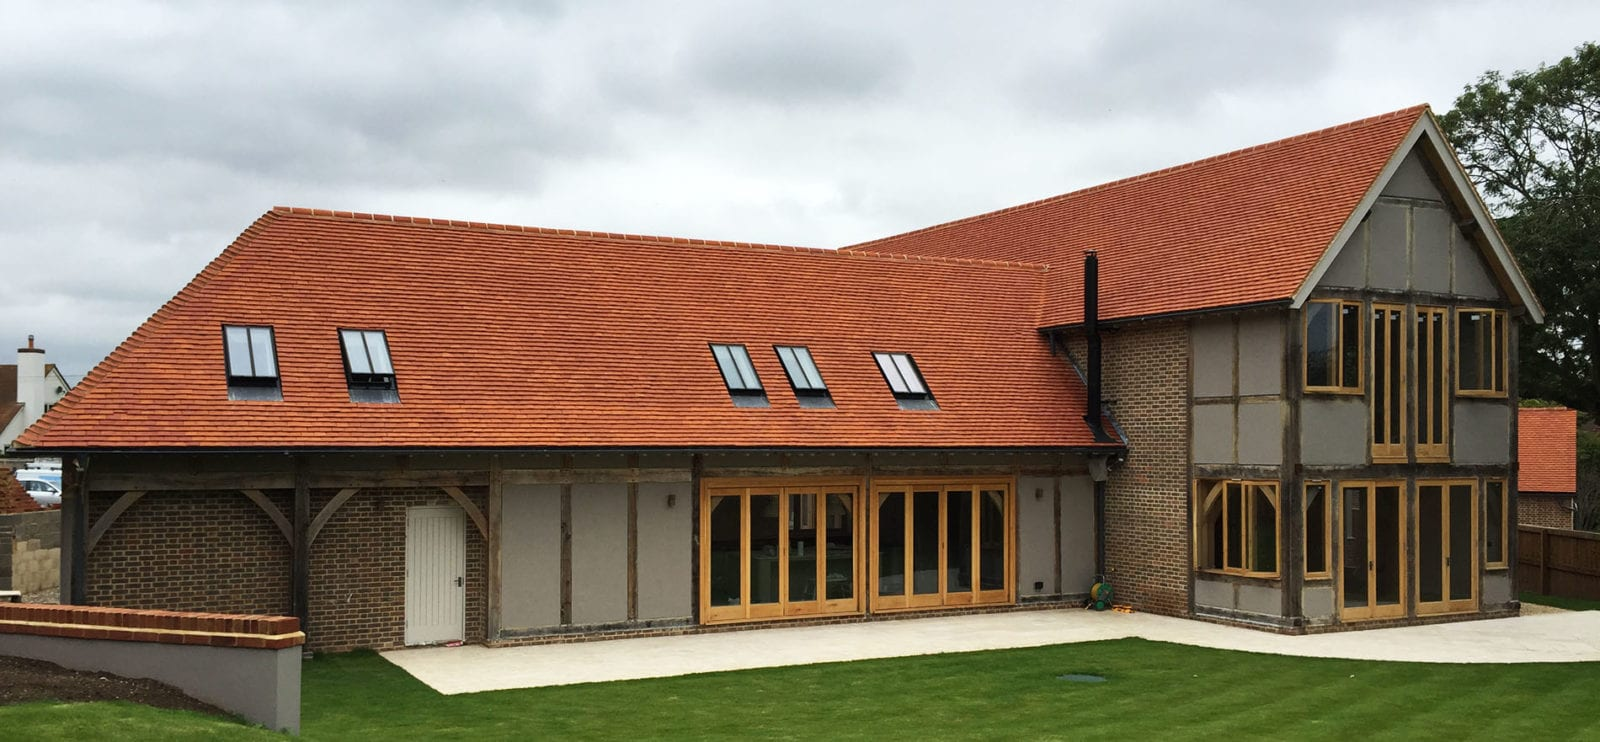 Lifestiles - Handcrafted Orange Clay Roof Tiles - Upthorpe, England